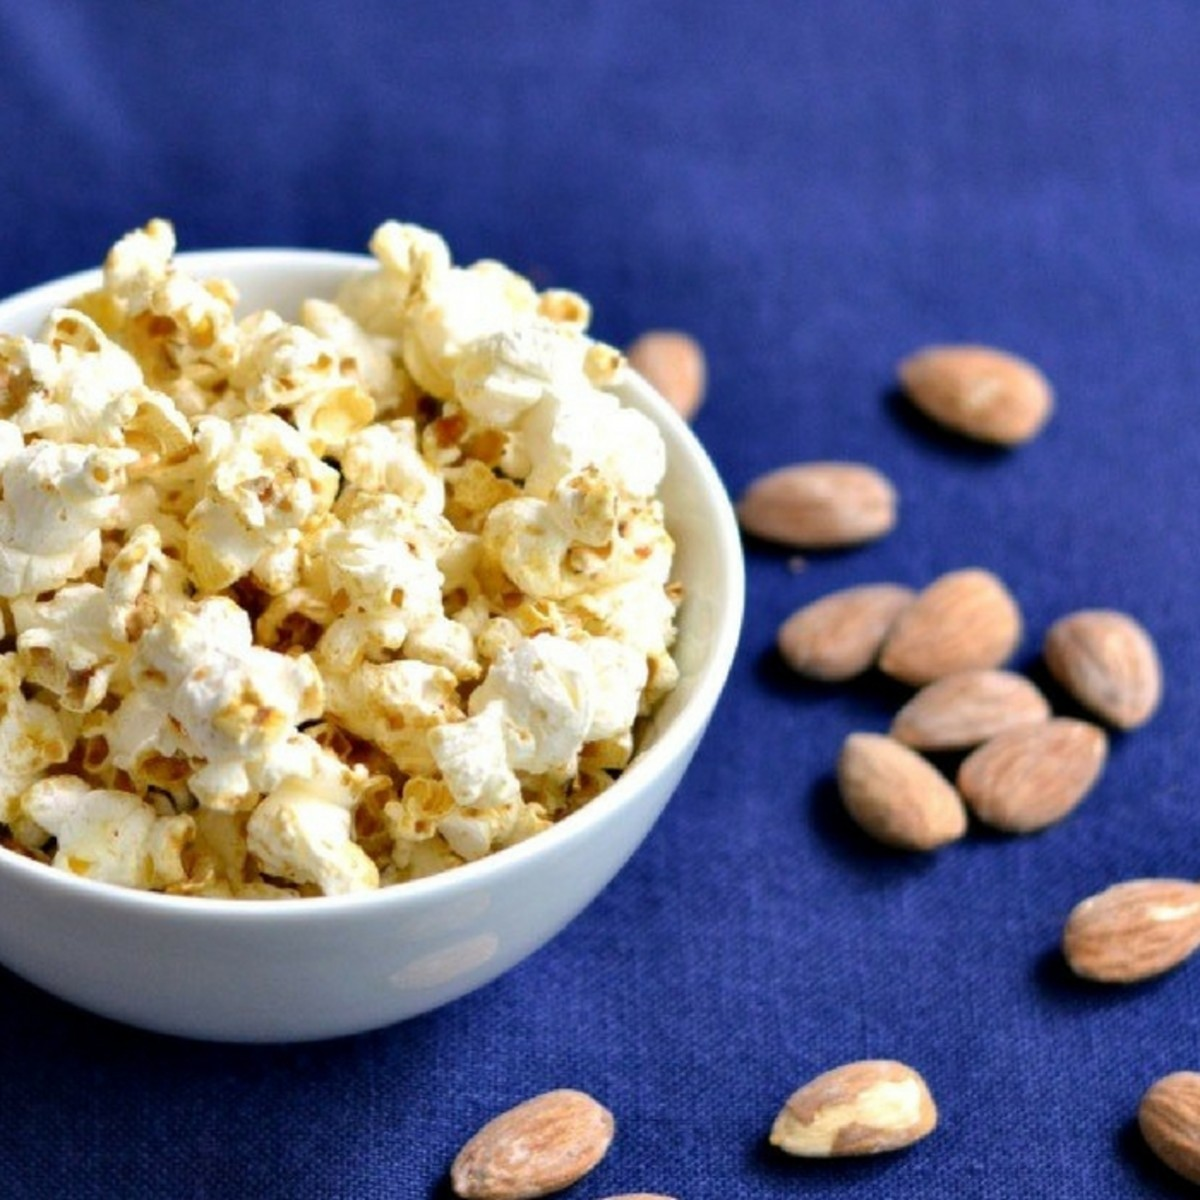 caramel and almond popcorn